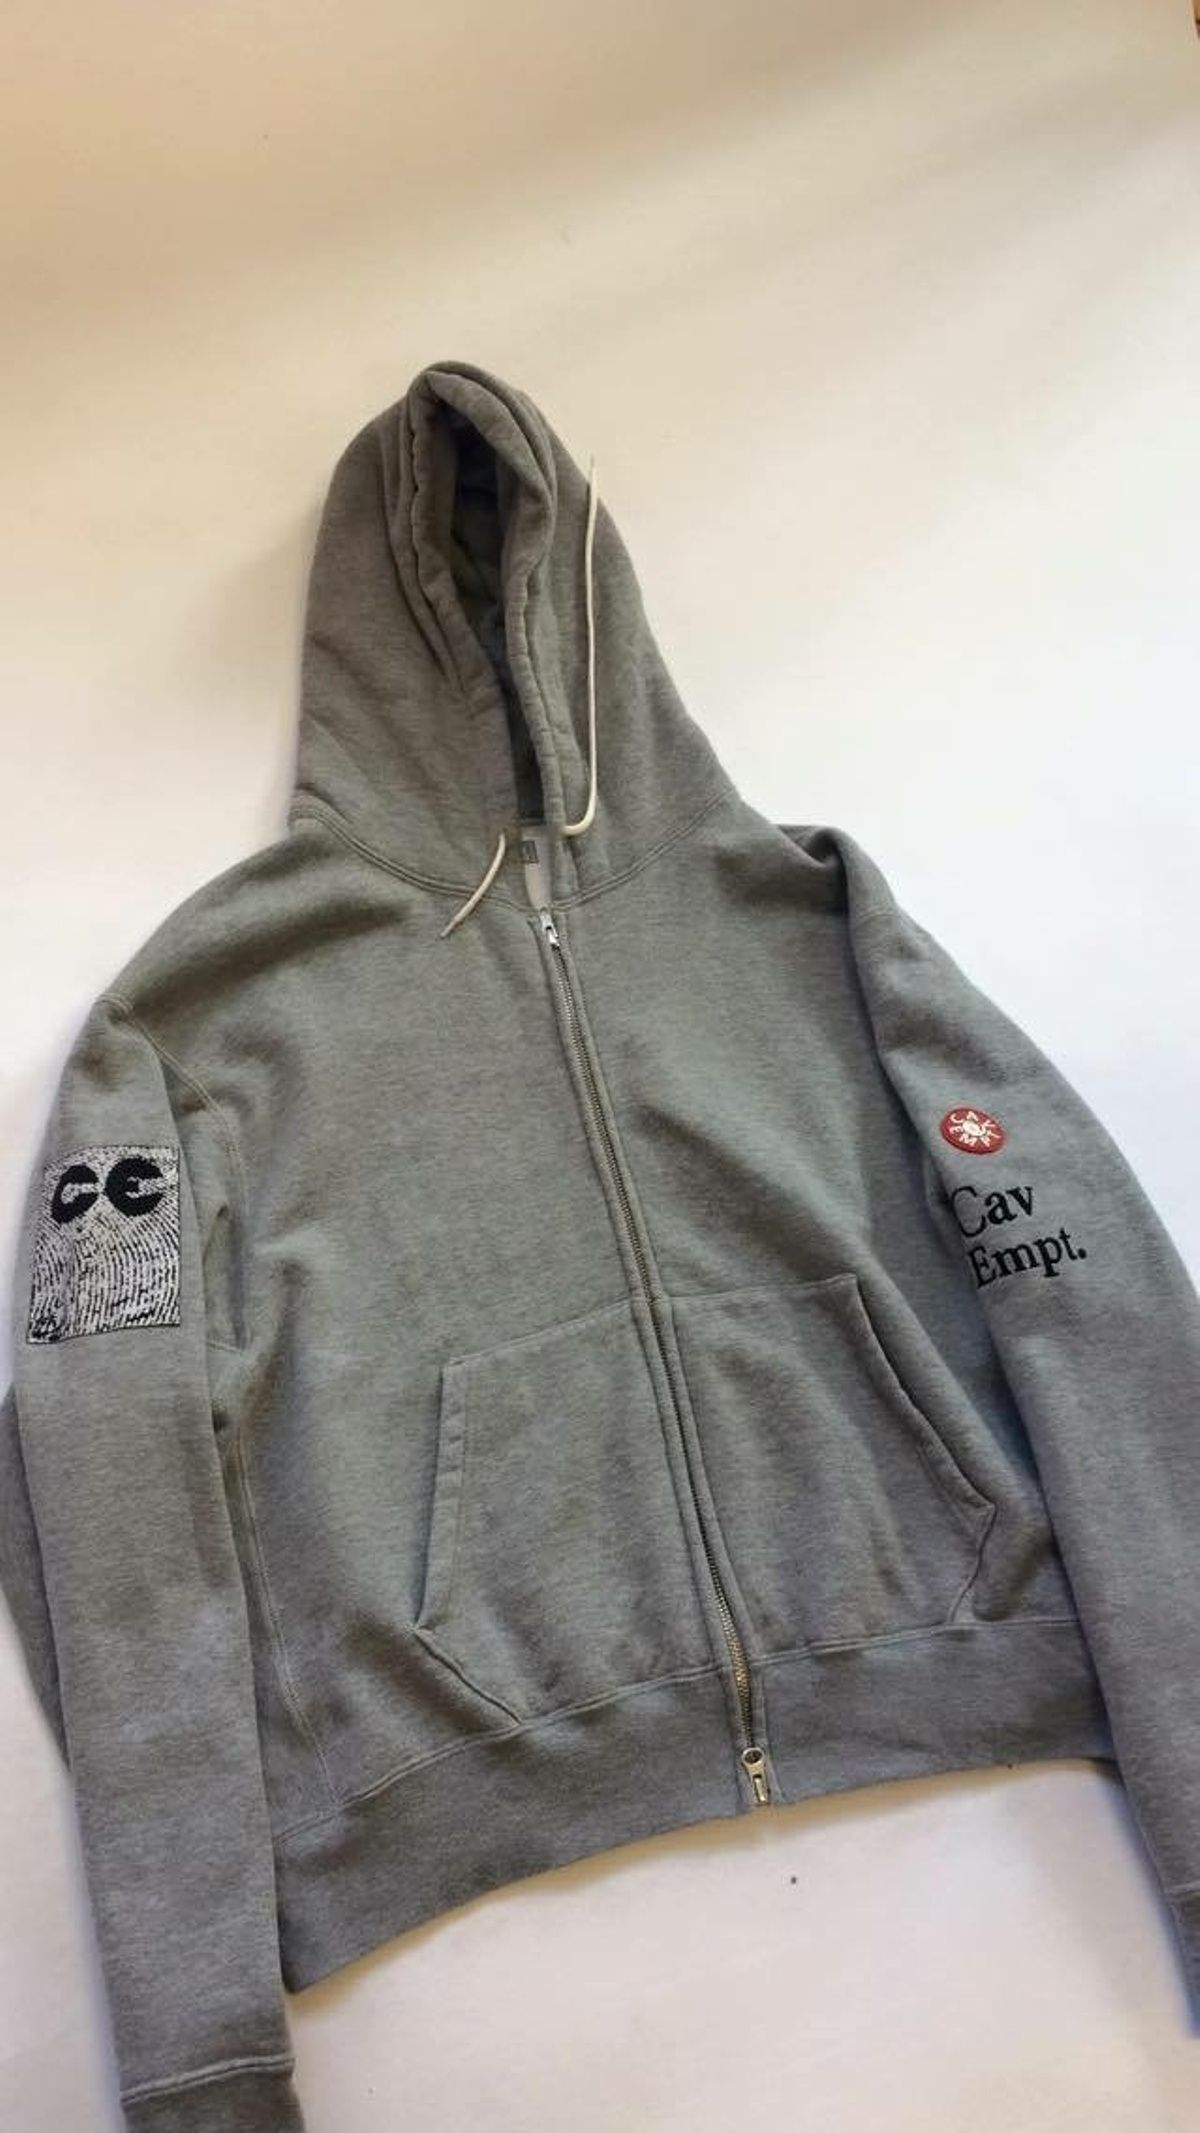 d3068668a Cav Empt Cav Empt Hoodie Light Grey Medium Size M  225 - Grailed ...